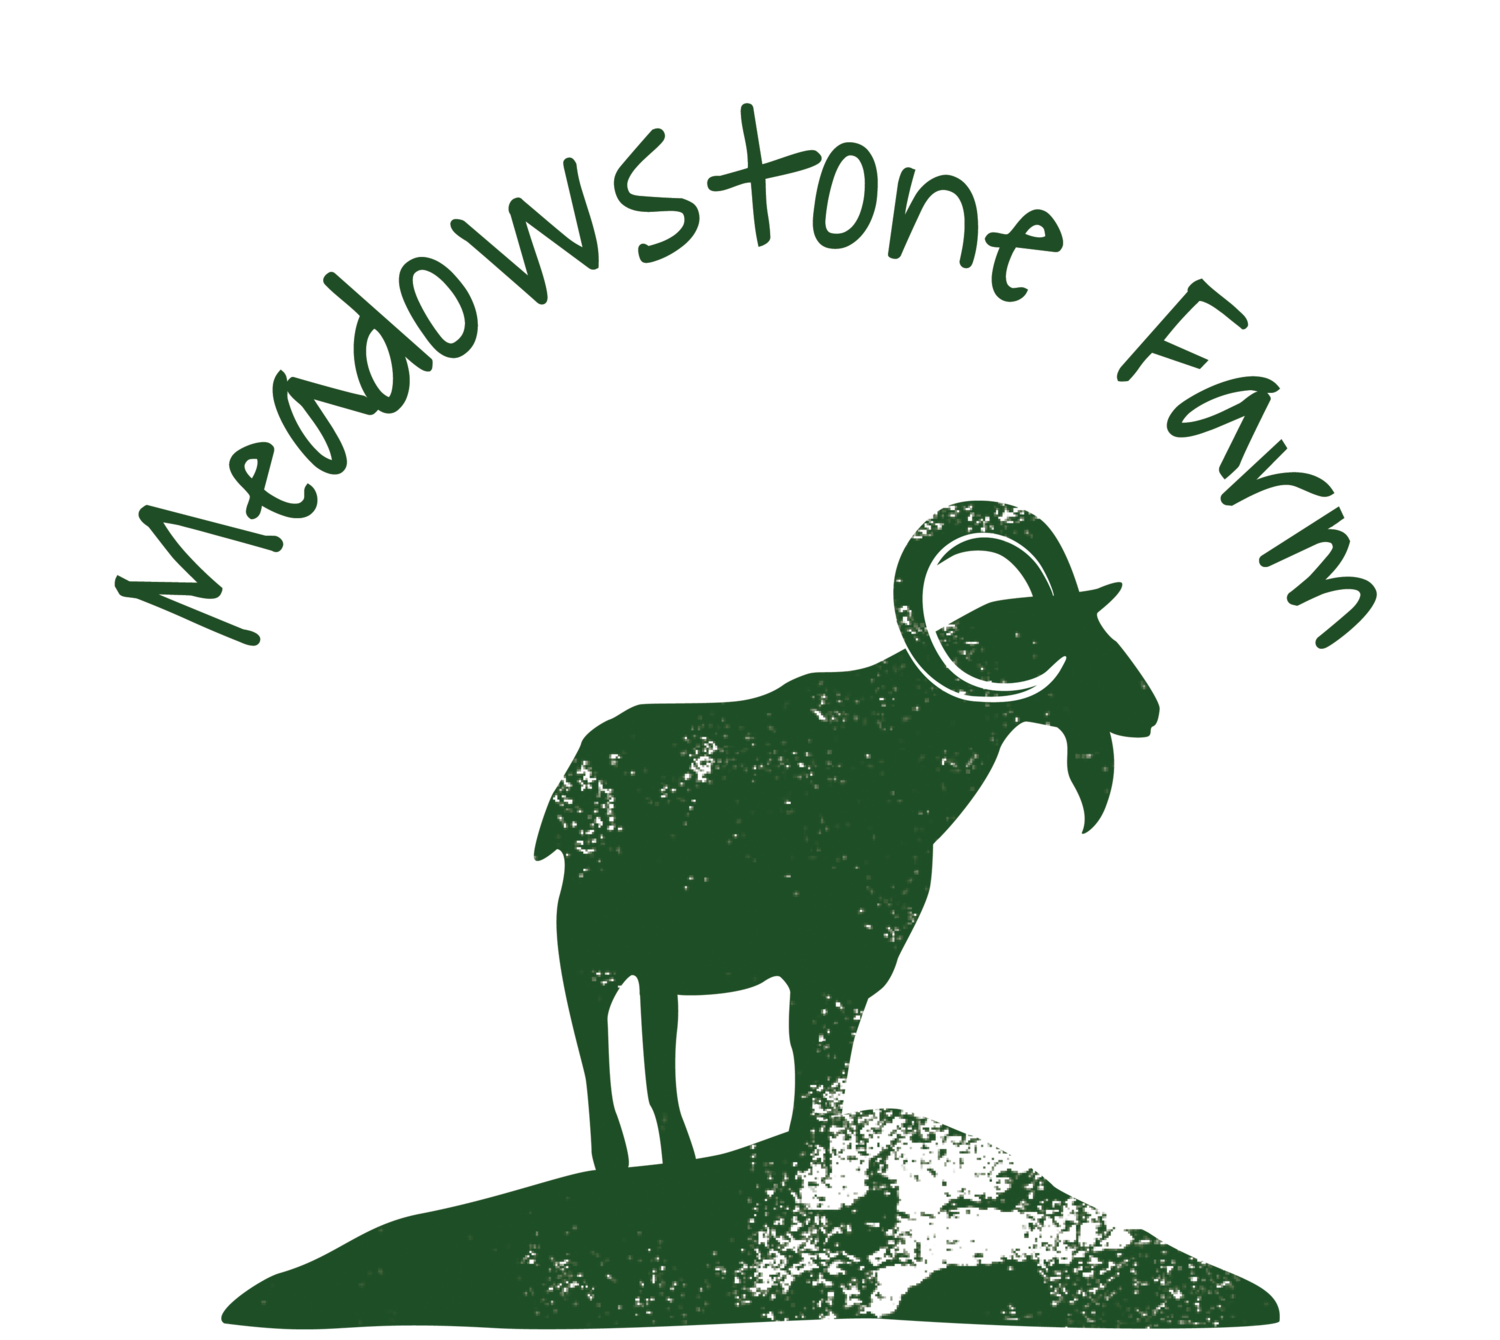 Pastured animals meadowstone farm. Clipart cow goat